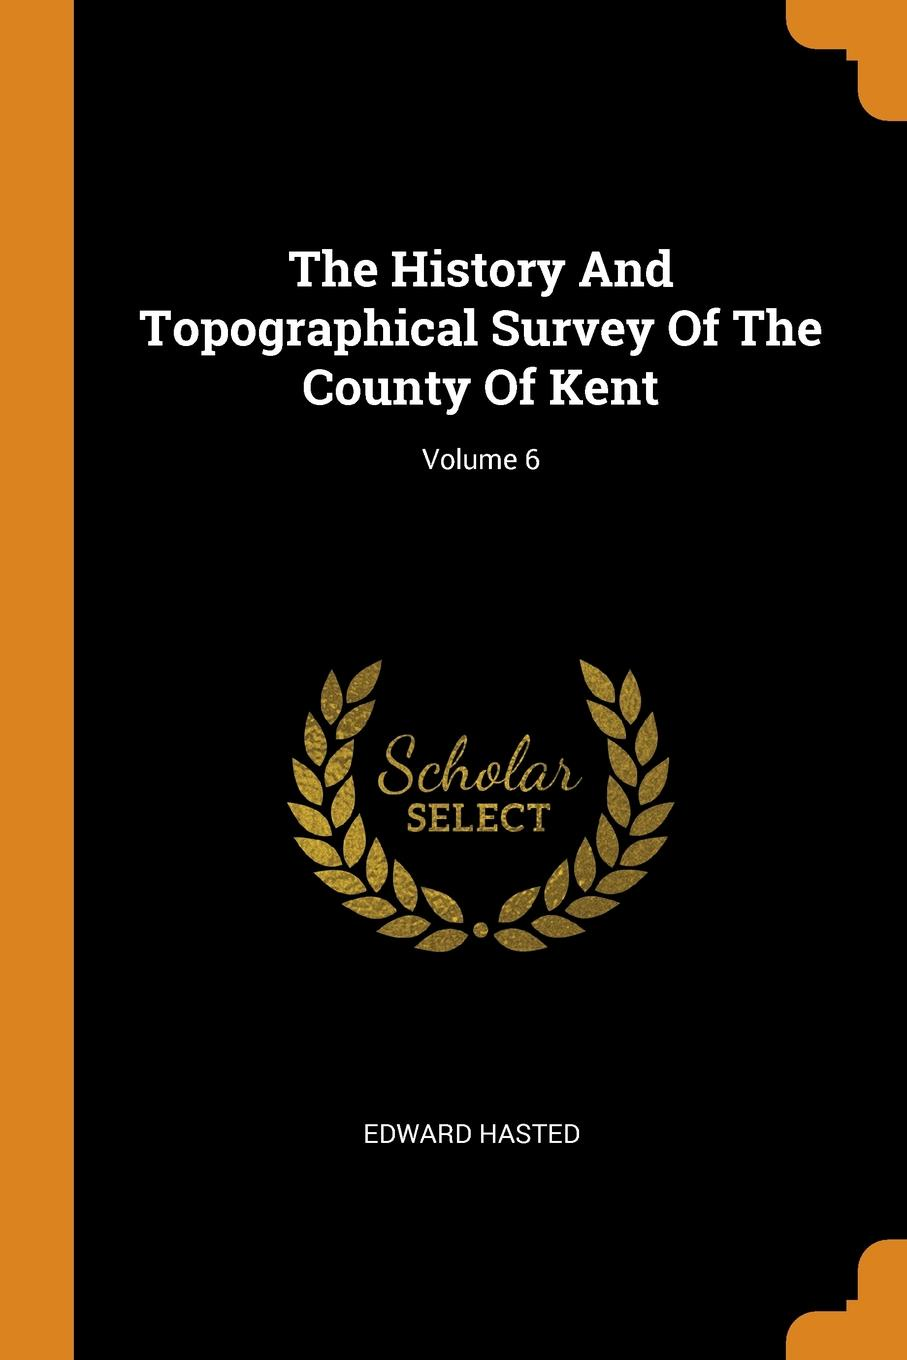 Edward Hasted The History And Topographical Survey Of The County Of Kent; Volume 6 edward hasted the history and topographical survey of the county of kent volume xii